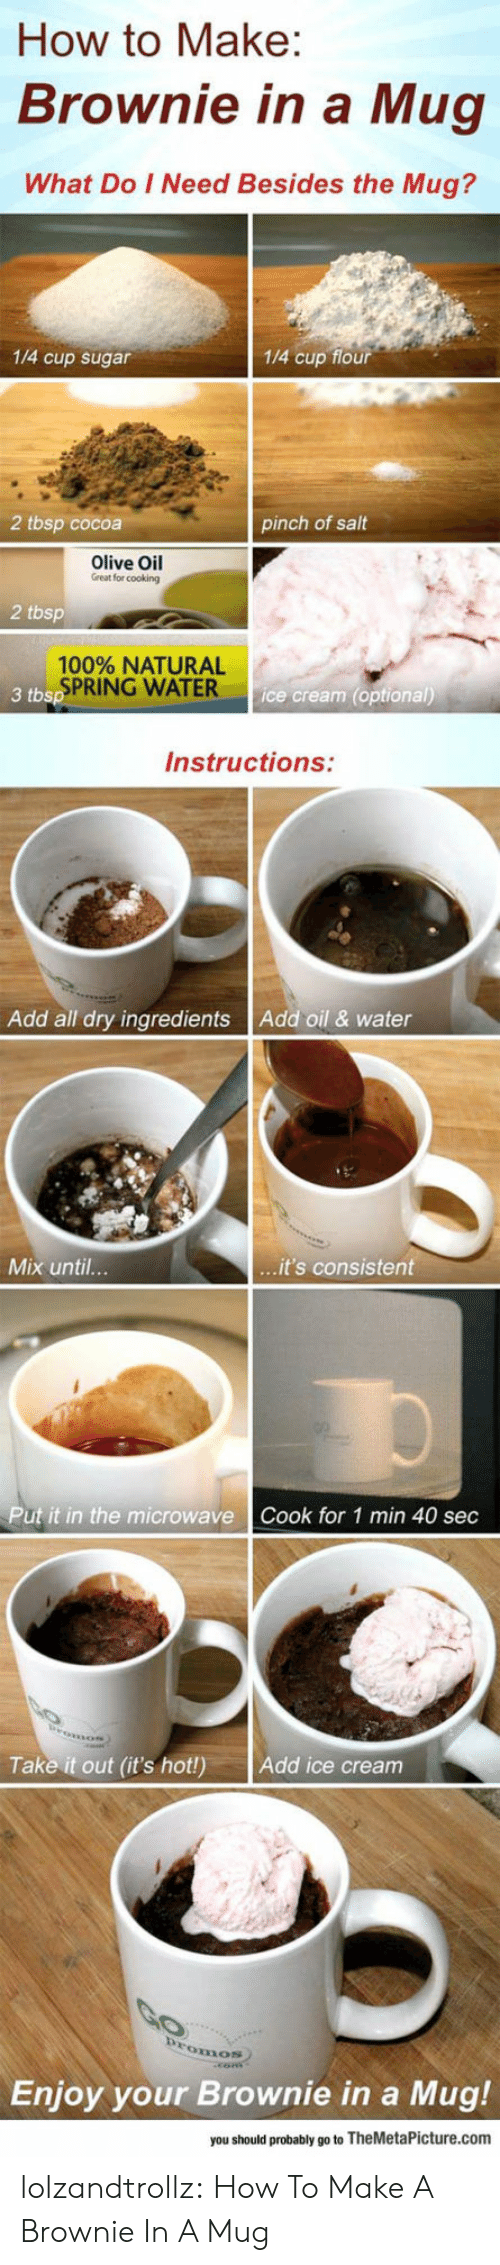 Ingredients: How to Make:  Brownie in a Mug  What Do I Need Besides the Mug?  1/4 cup sugar  1/4 cup flour  2 tbsp cocoa  pinch of salt  Olive Oil  Great for cooking  2 tbsp  100% NATURAL  SPRING WATER  3 tbsp  ice cream (optional)  Instructions:  Add oil & water  Add all dry ingredients  ...it's consistent  Mix until...  Put it in the microwave  Cook for 1 min 40 sec  Take it out (it's hot!)  Add ice cream  Promos  Enjoy your Brownie in a  Mug!  you should probably go to TheMetaPicture.com lolzandtrollz:  How To Make A Brownie In A Mug